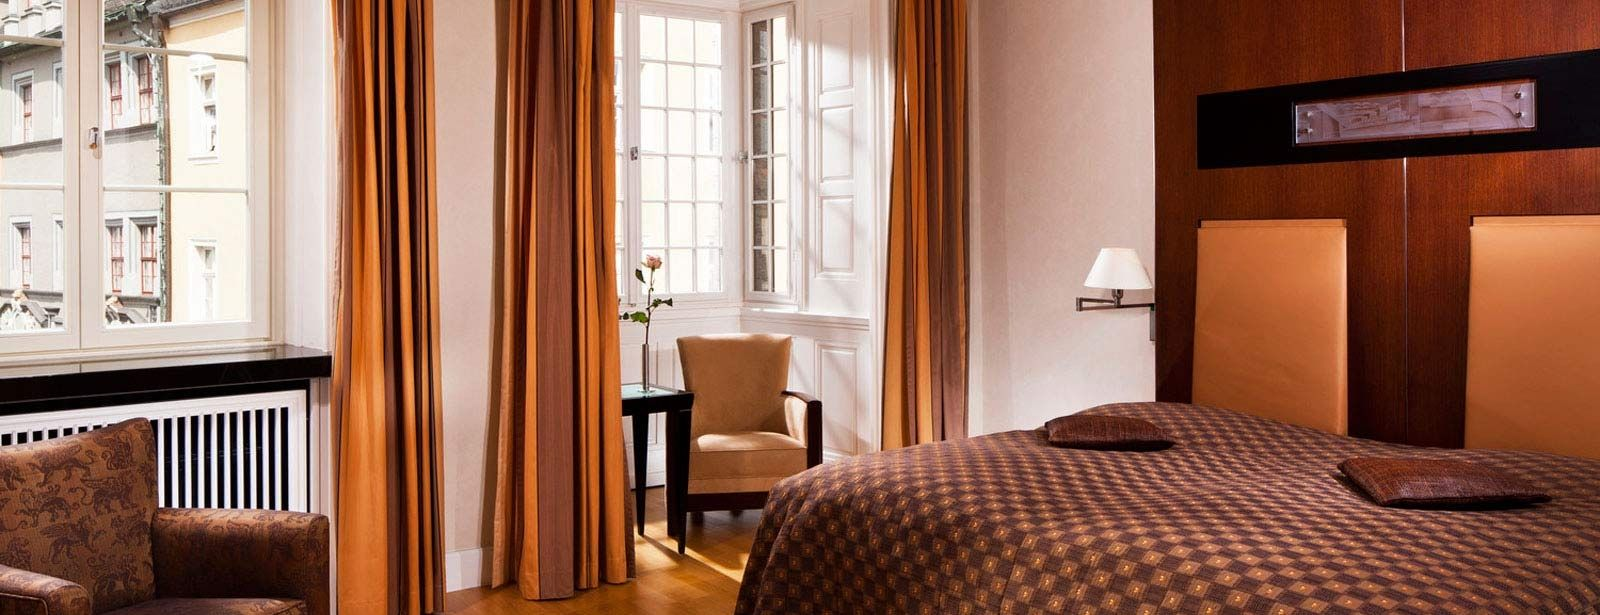 Thomas-Mann-Suite at Hotel Elephant Weimar